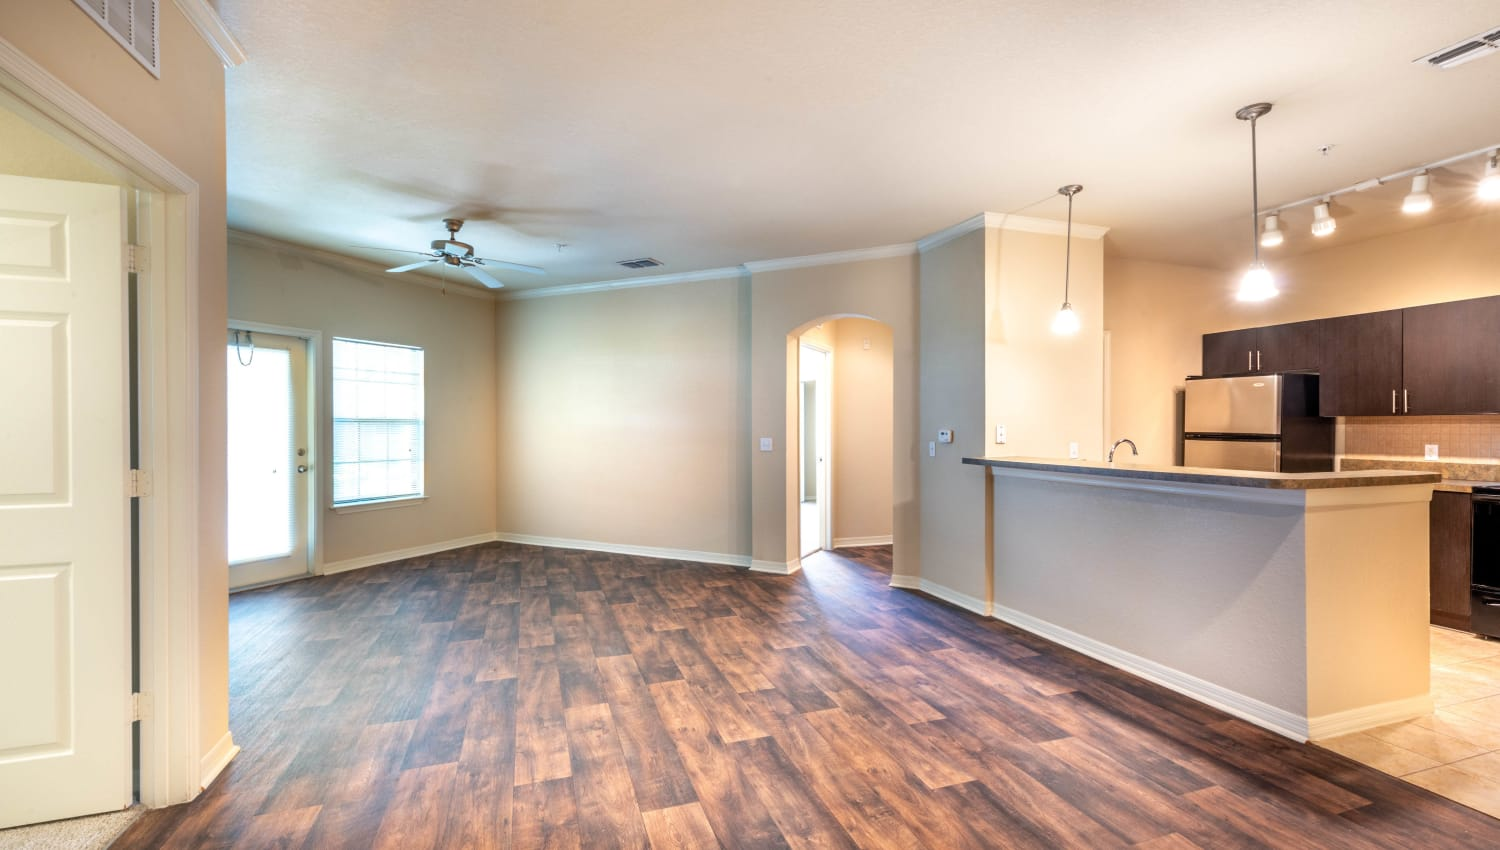 Beautiful hardwood flooring throughout the living areas of a model home at Mirador & Stovall at River City in Jacksonville, Florida